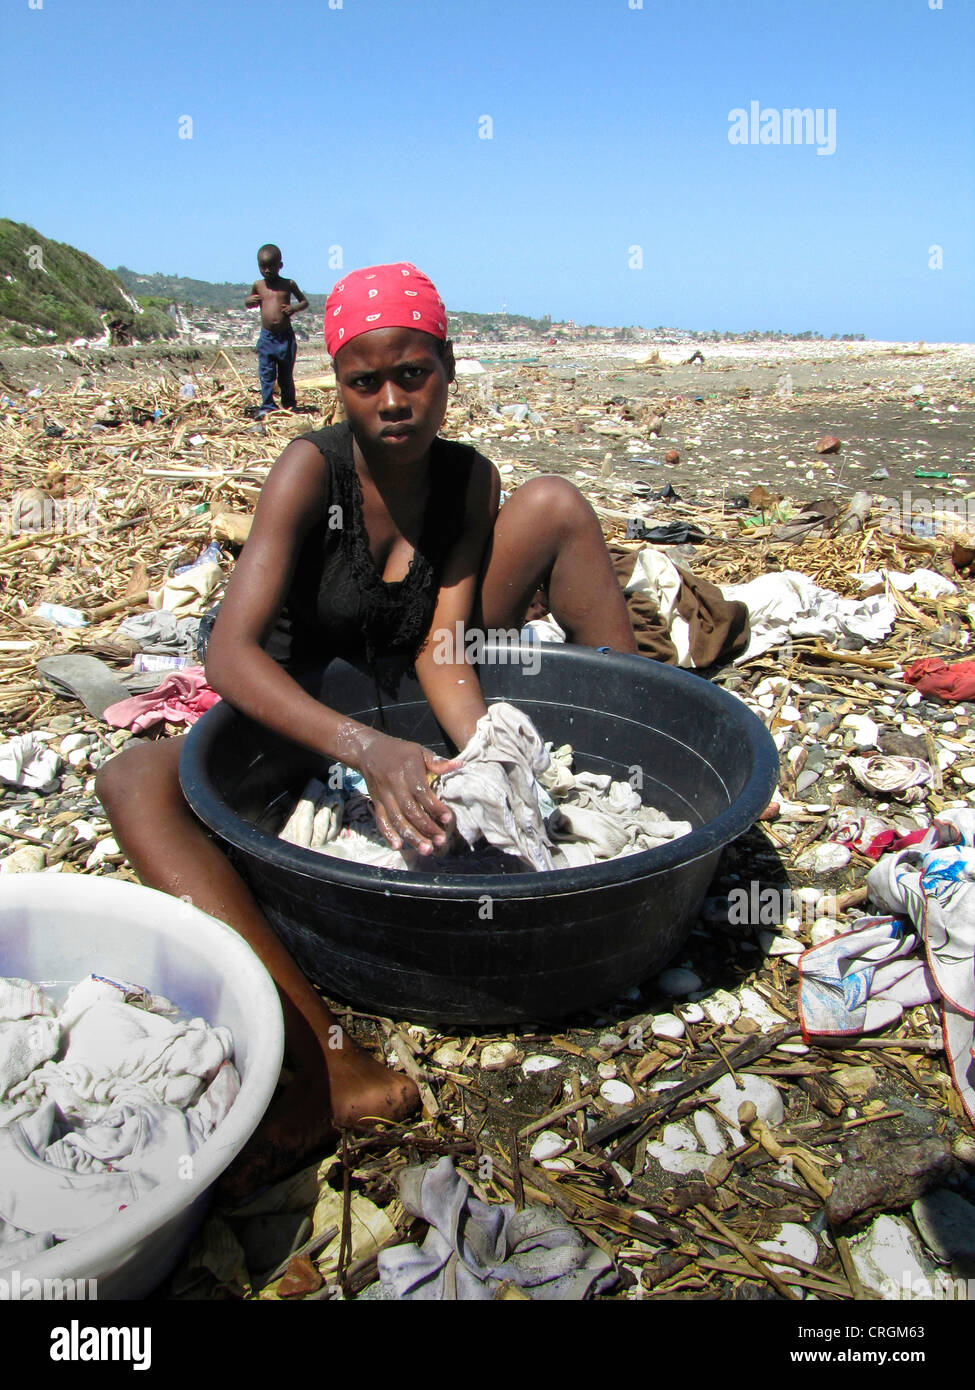 woman doing her laundry in a plastic bowl at a beach full of flotsam, small boy walking in the background, Haiti, - Stock Image